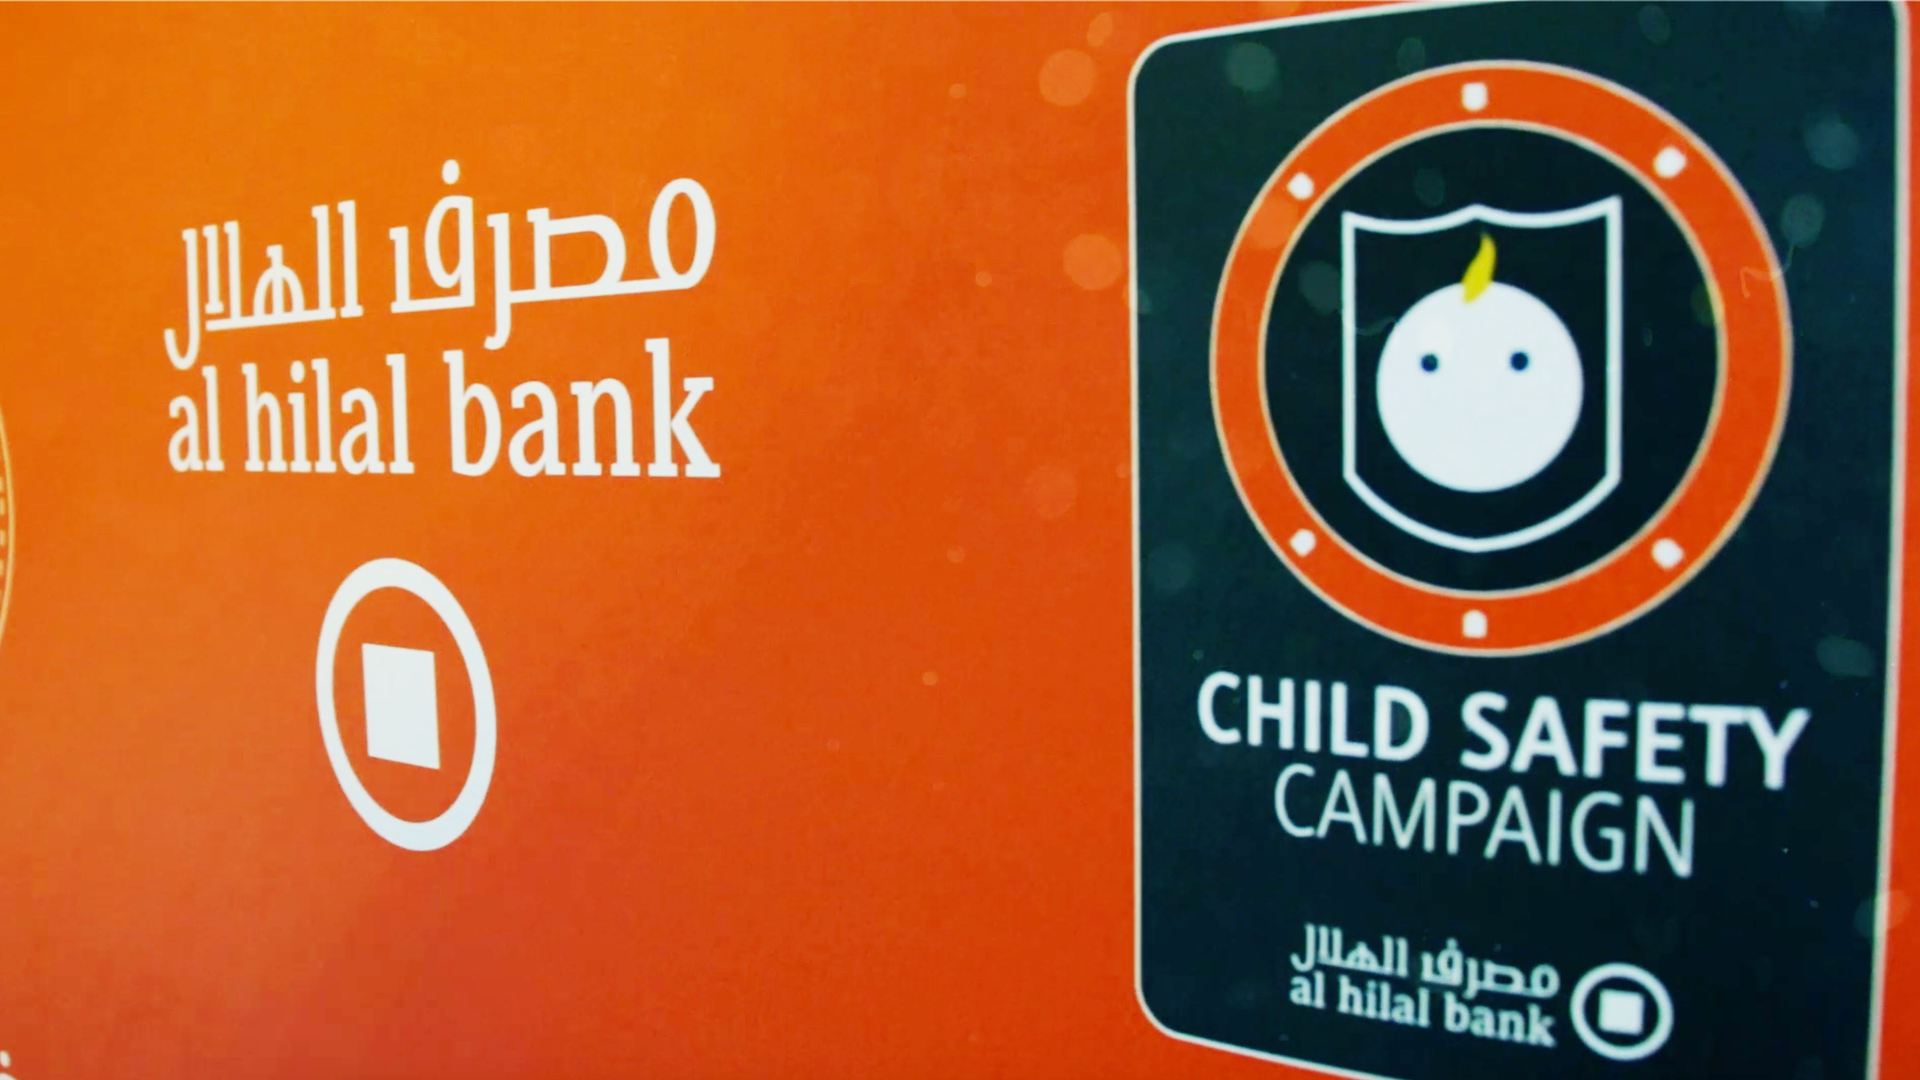 Al HILAL BANK CHILD SAFTY CAMPAIN